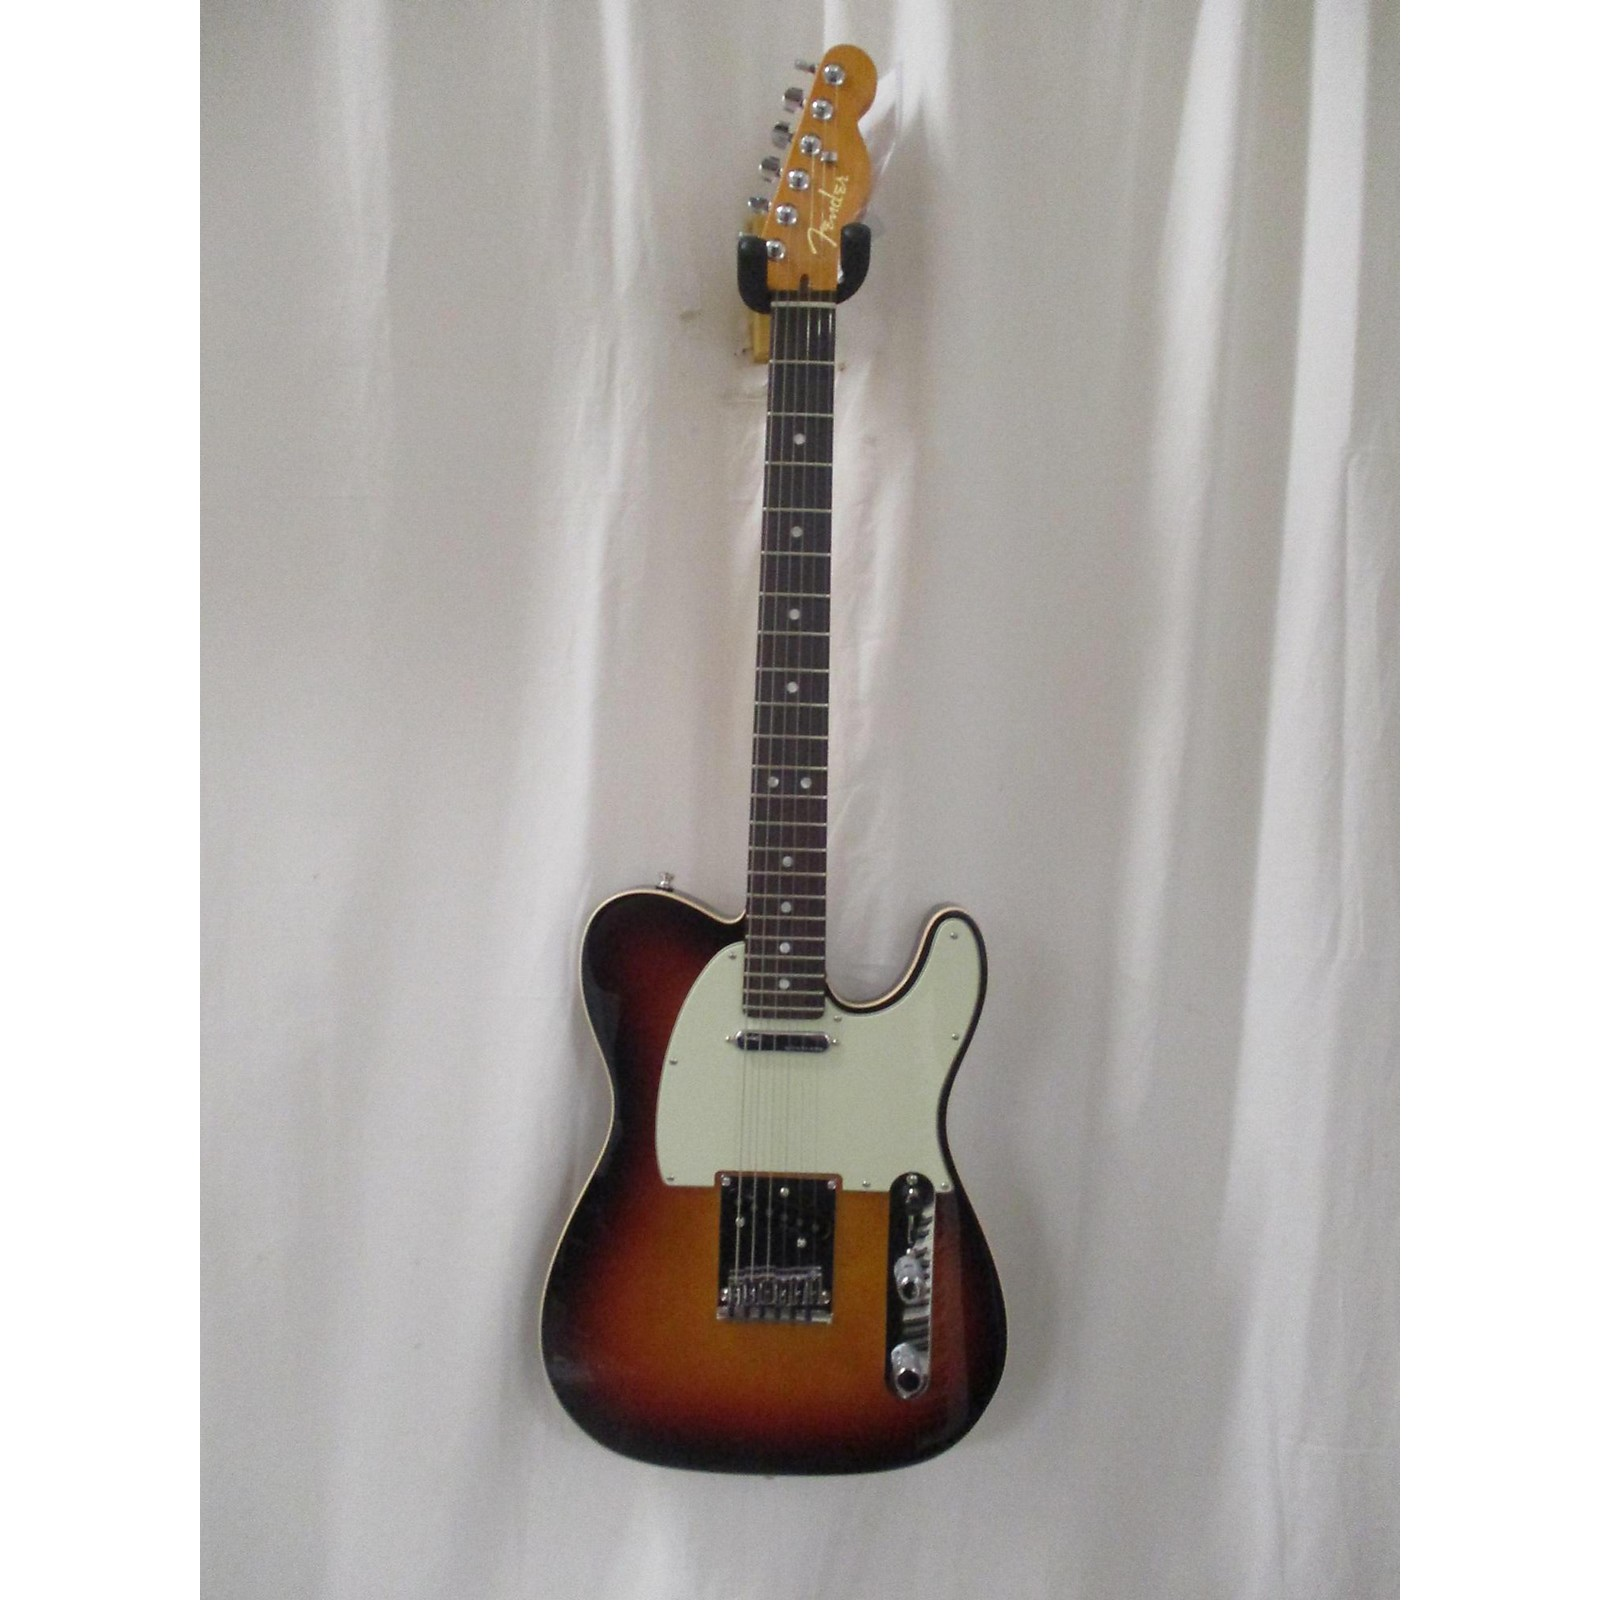 Fender American Ultra Telecaster Solid Body Electric Guitar